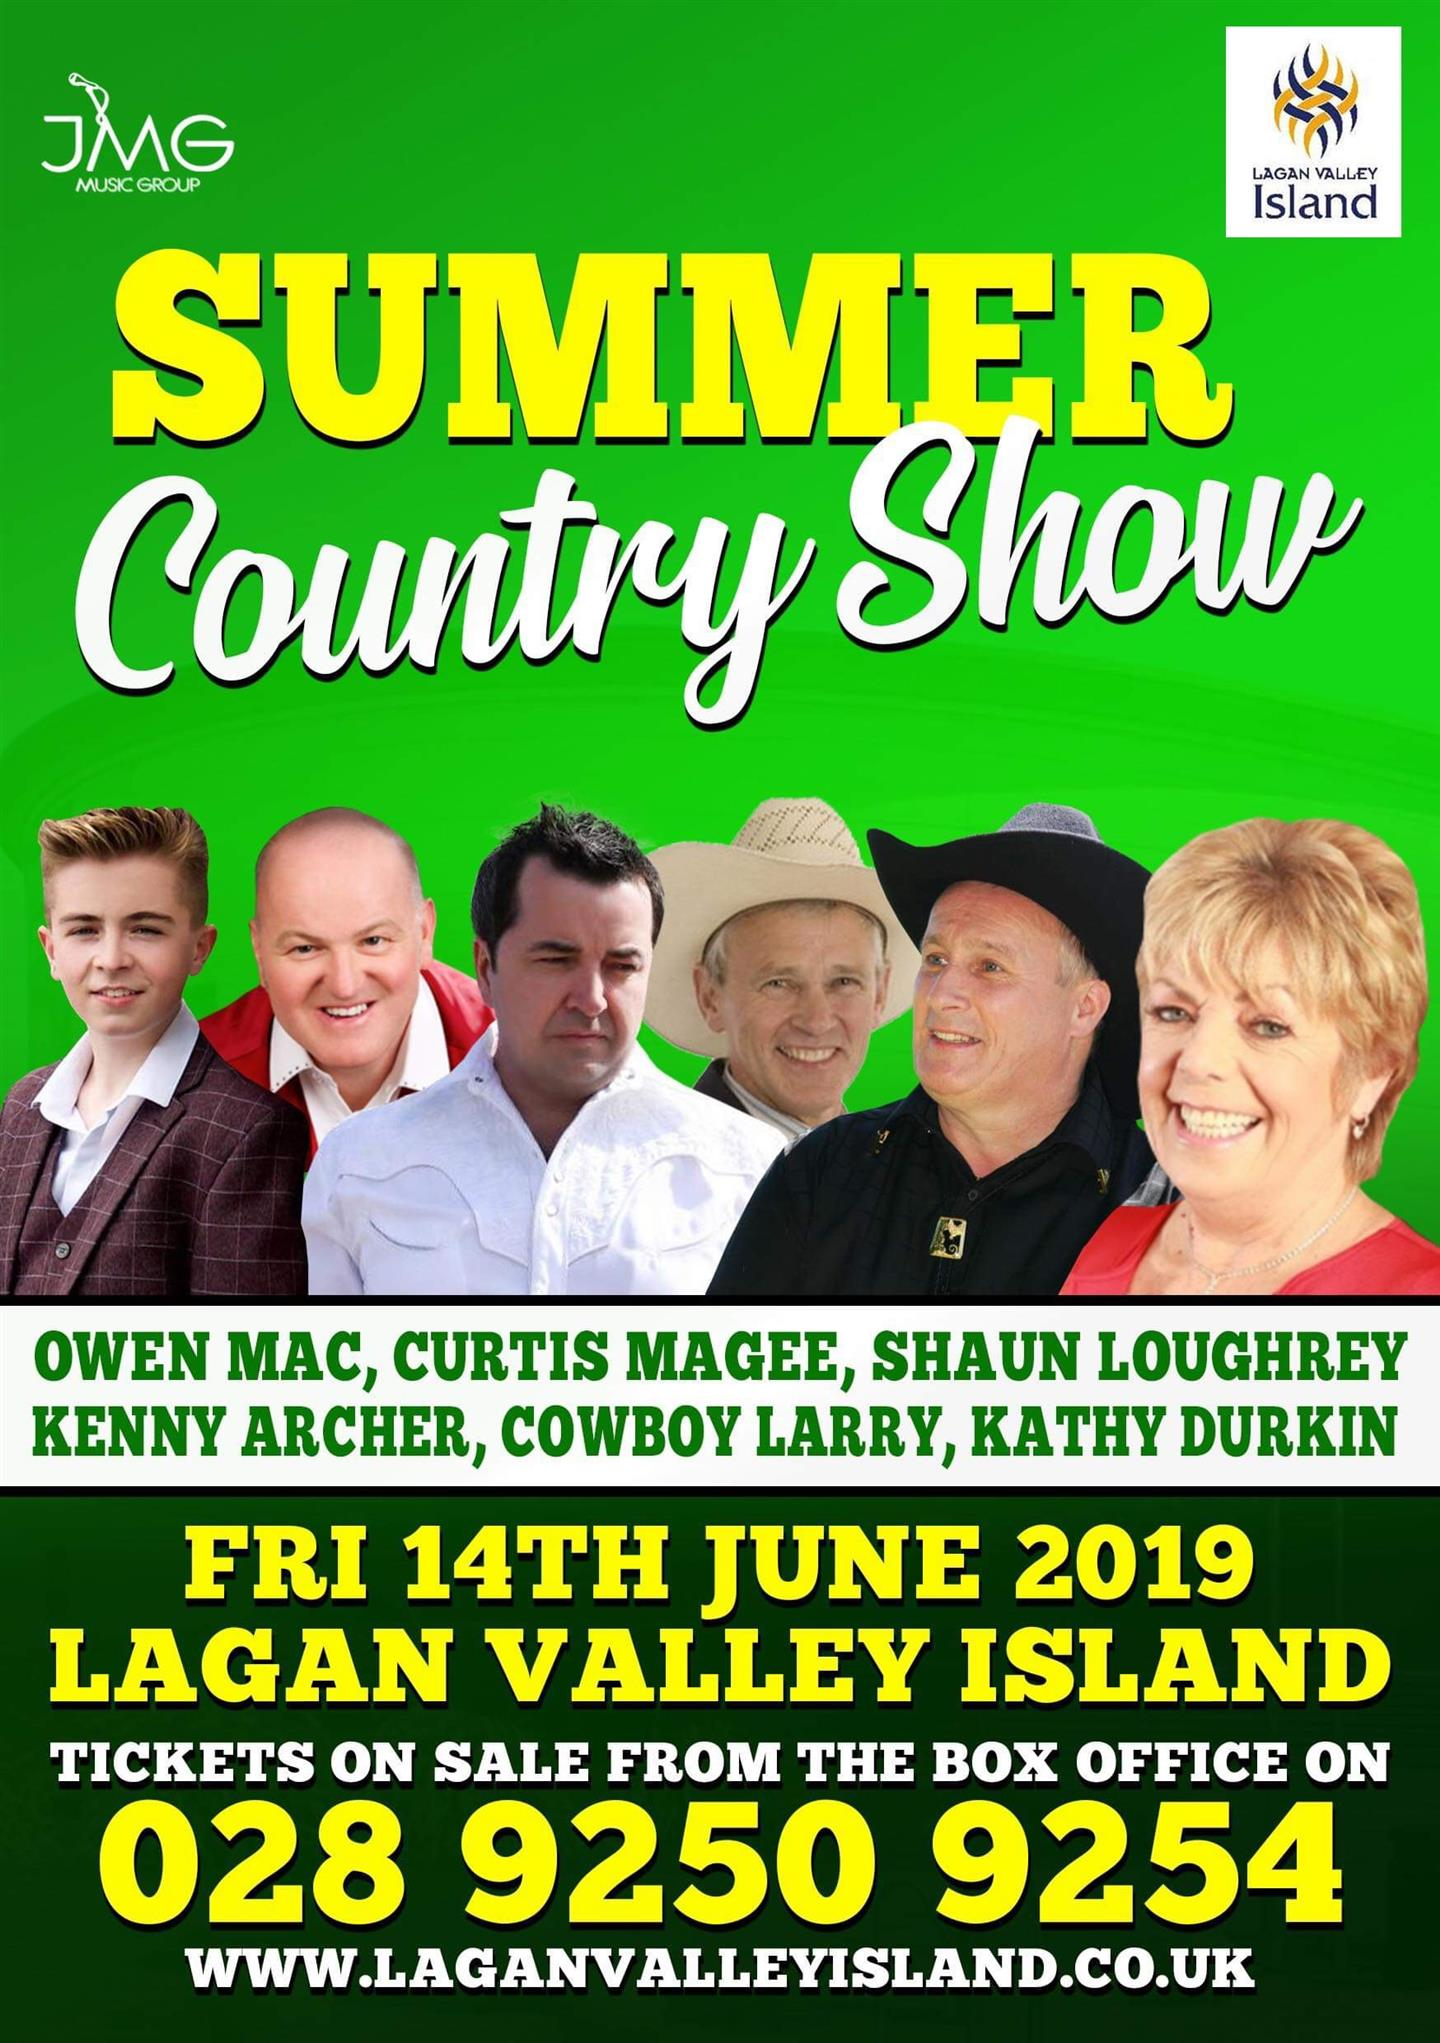 The Summer Country Show